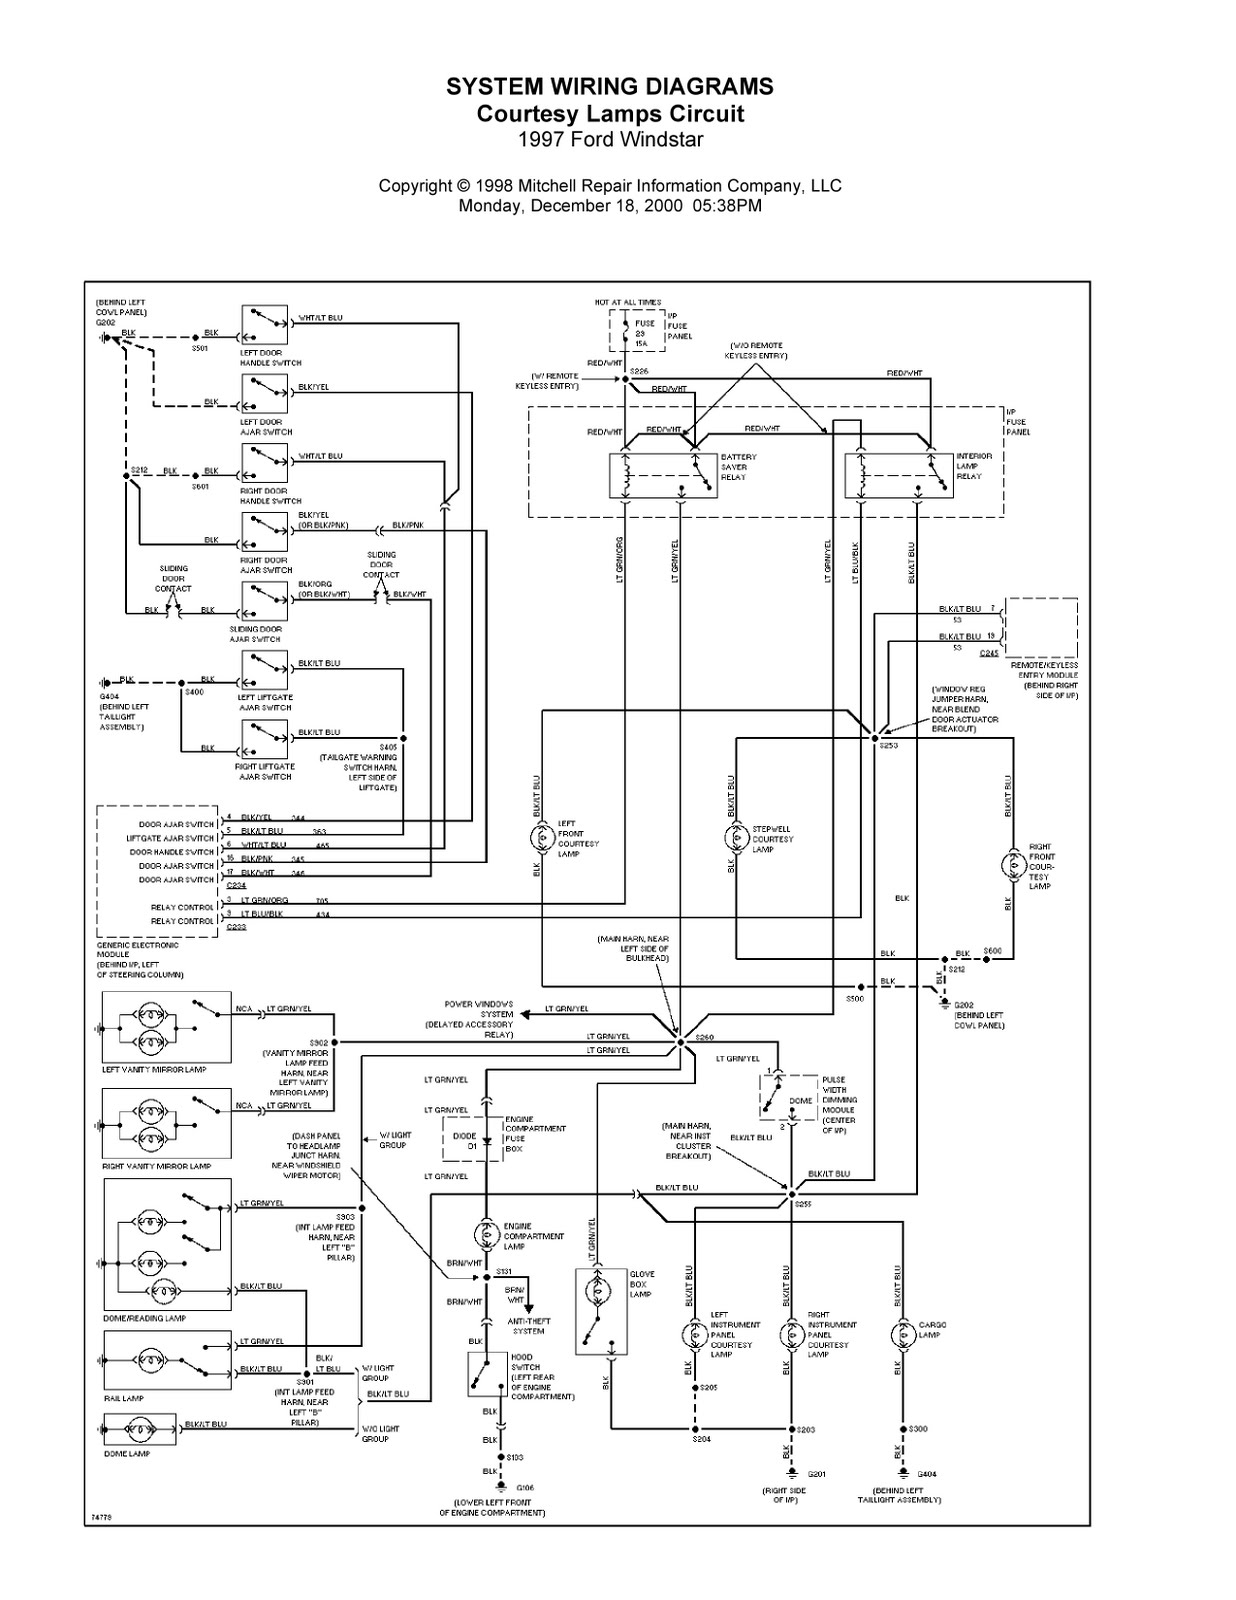 Ford Windstar Electrical Diagram Wiring Schematic 2019 2003 1997 Complete System Diagrams 2001